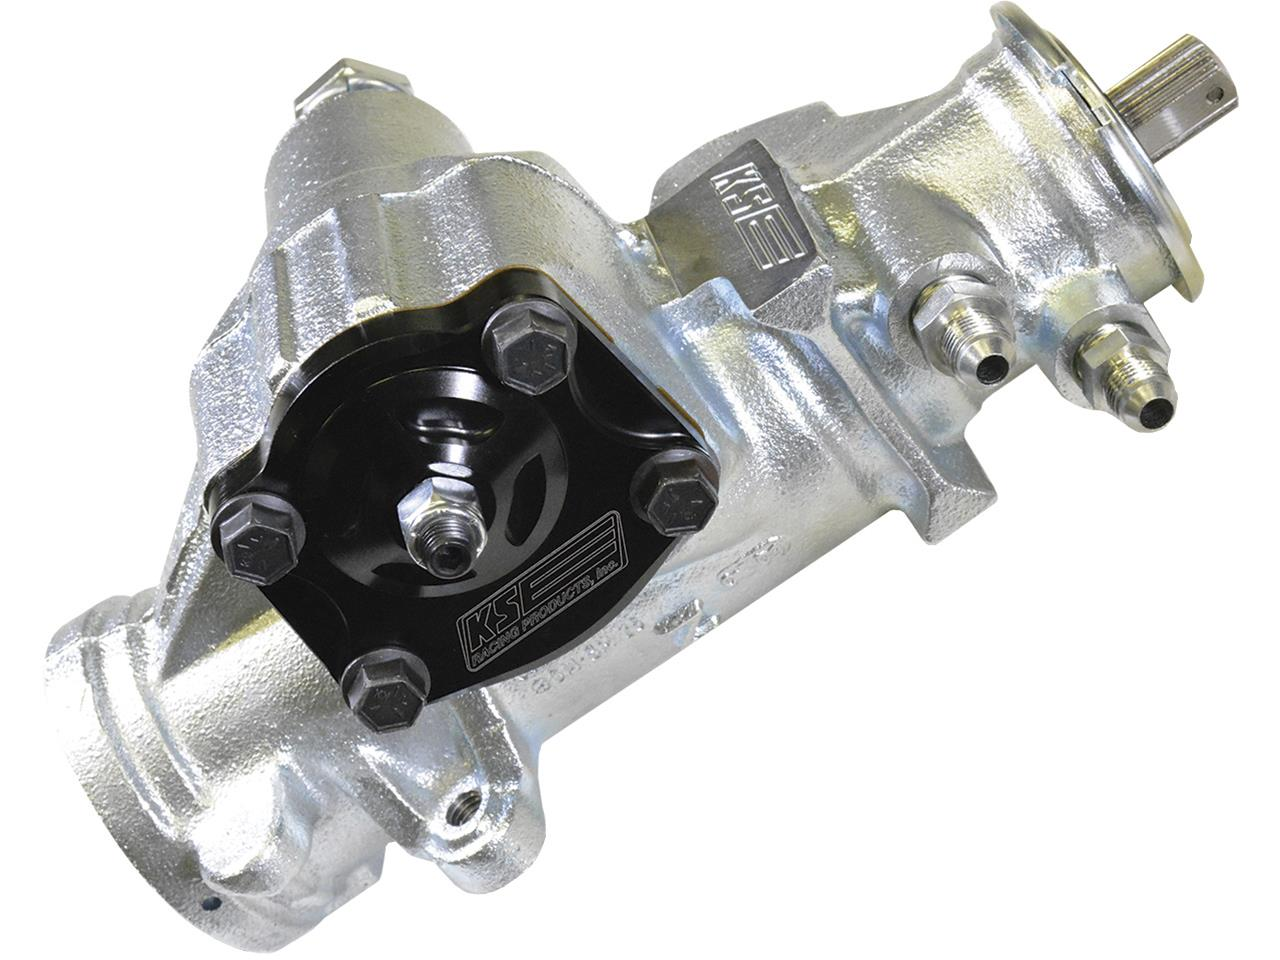 KSE 700 Series 6:1 Steering Box With .185 Valve